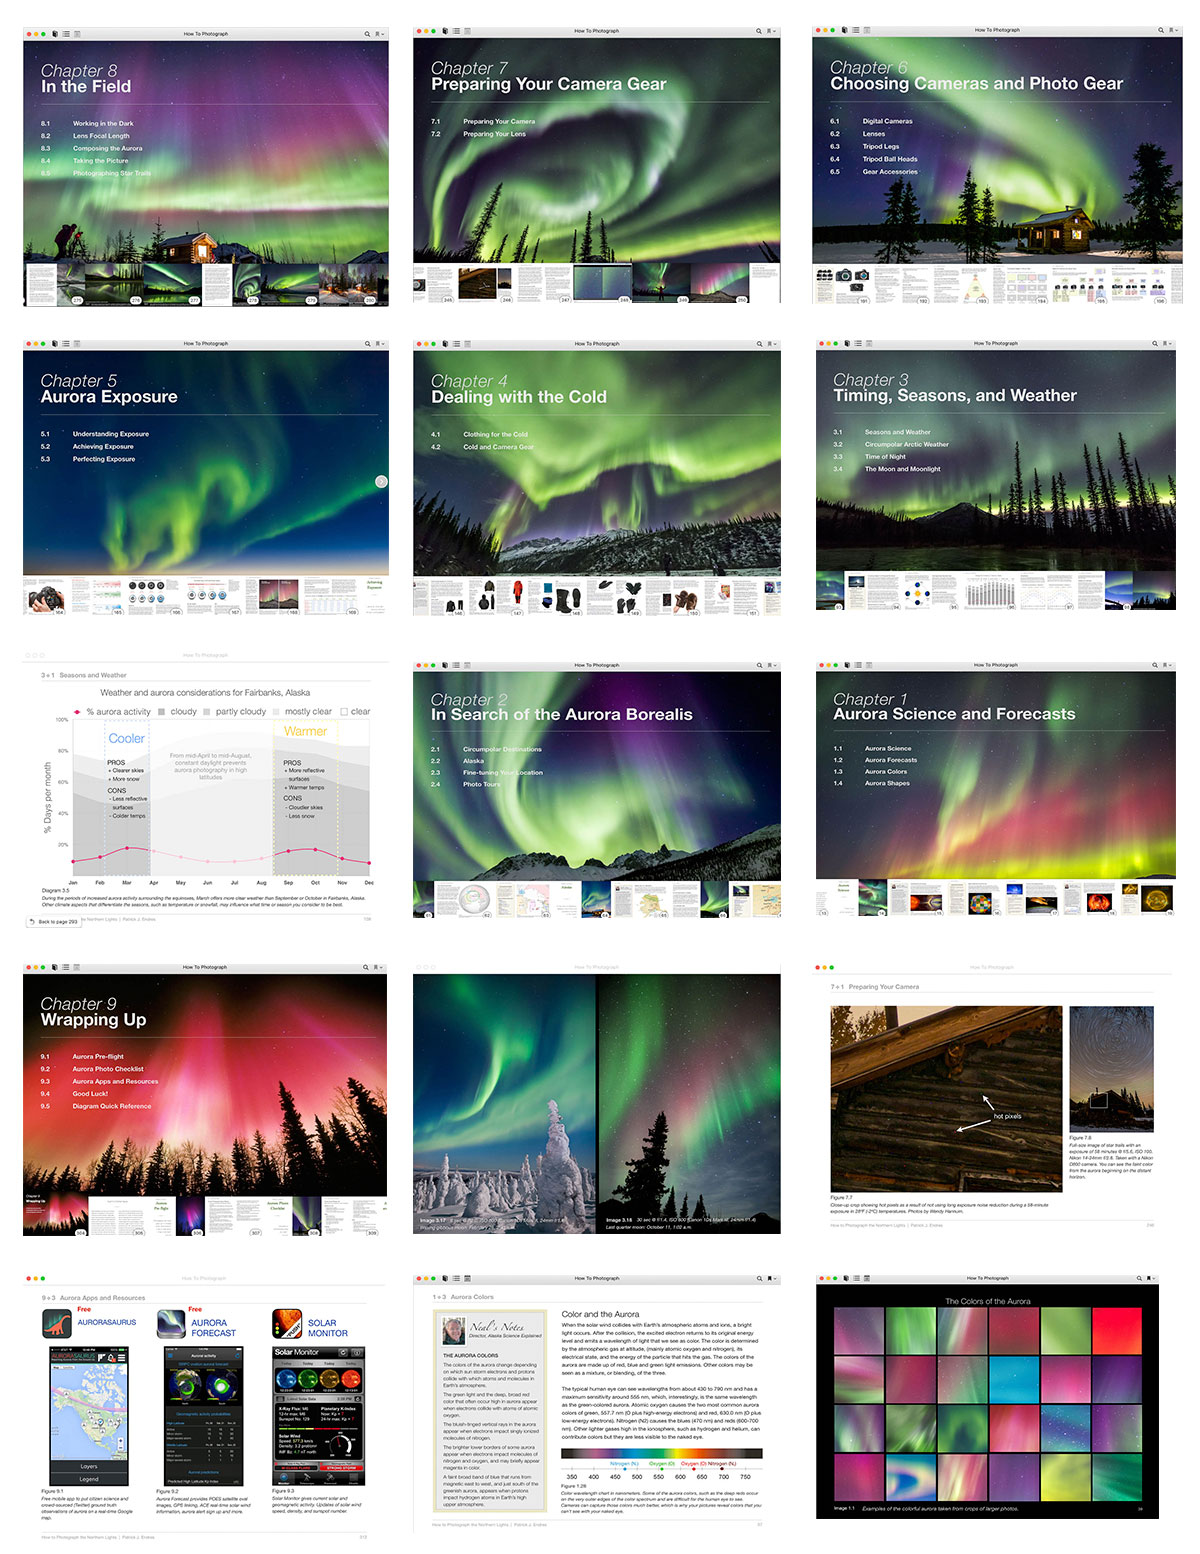 Patrick Endres ebook on Northern Lights Photography sample pages